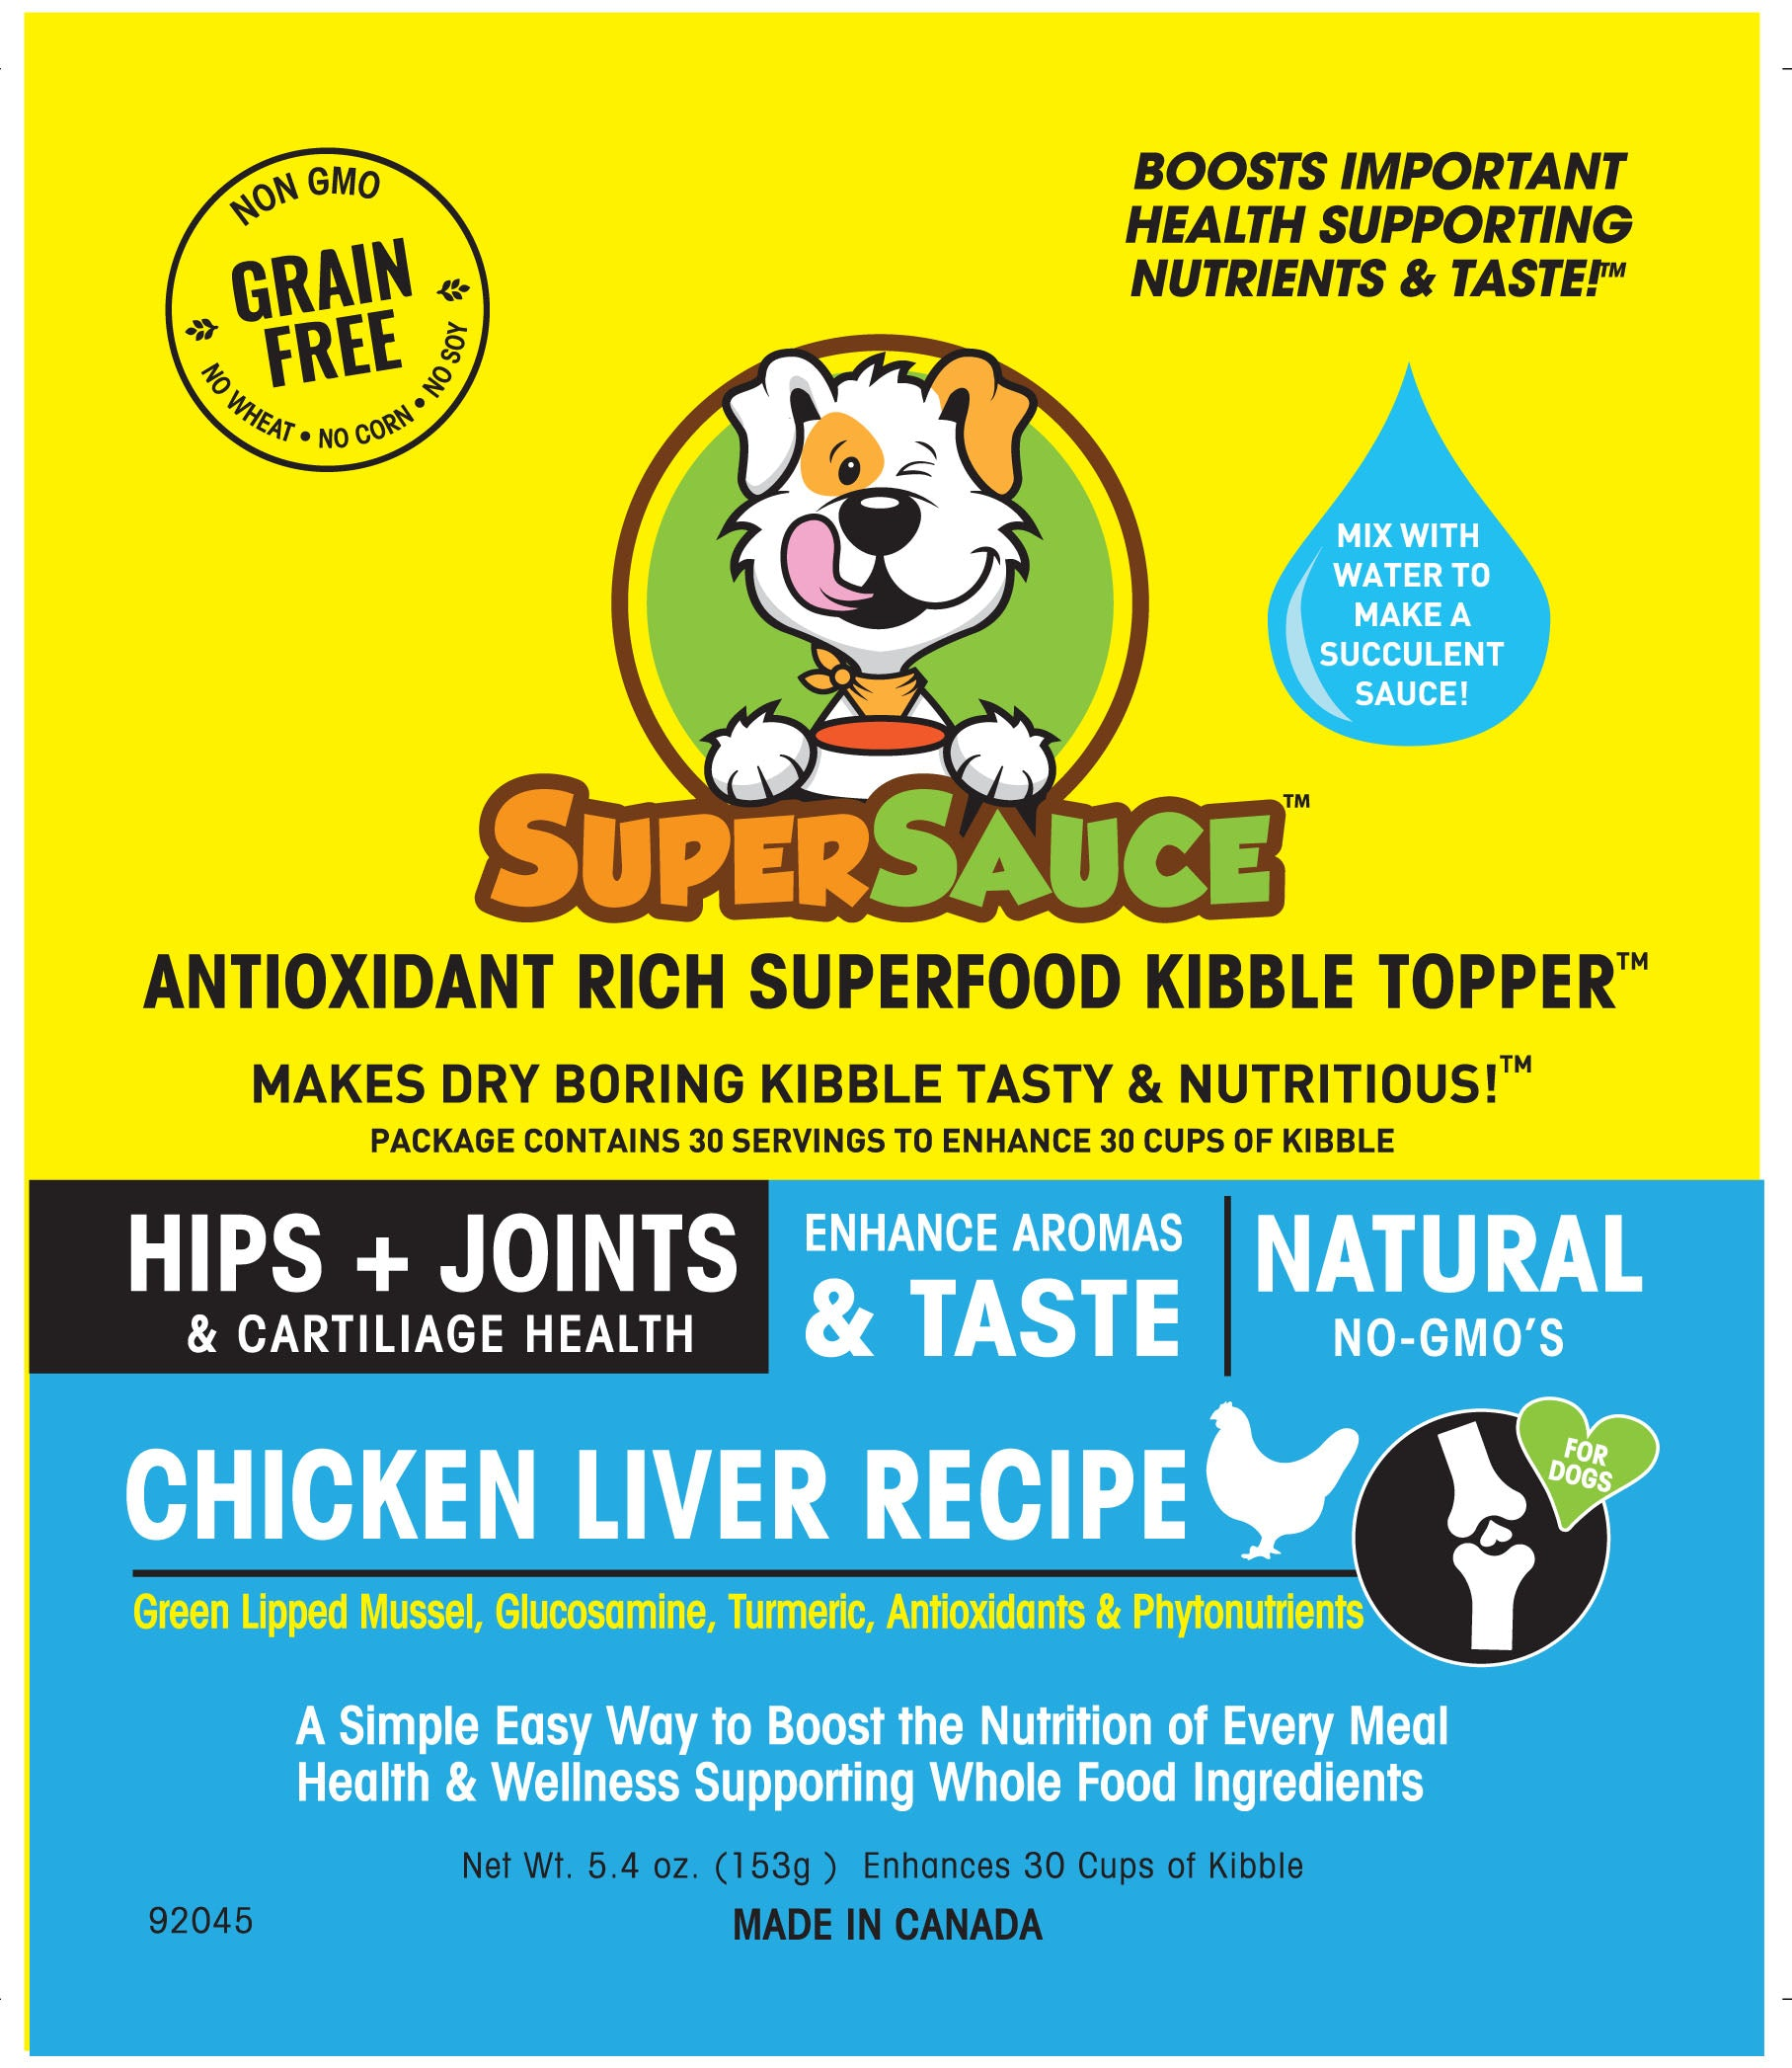 SUPERSAUCE™ Chicken Liver + HIPS & JOINTS Health 5.4 oz. (153g) MADE IN CANADA